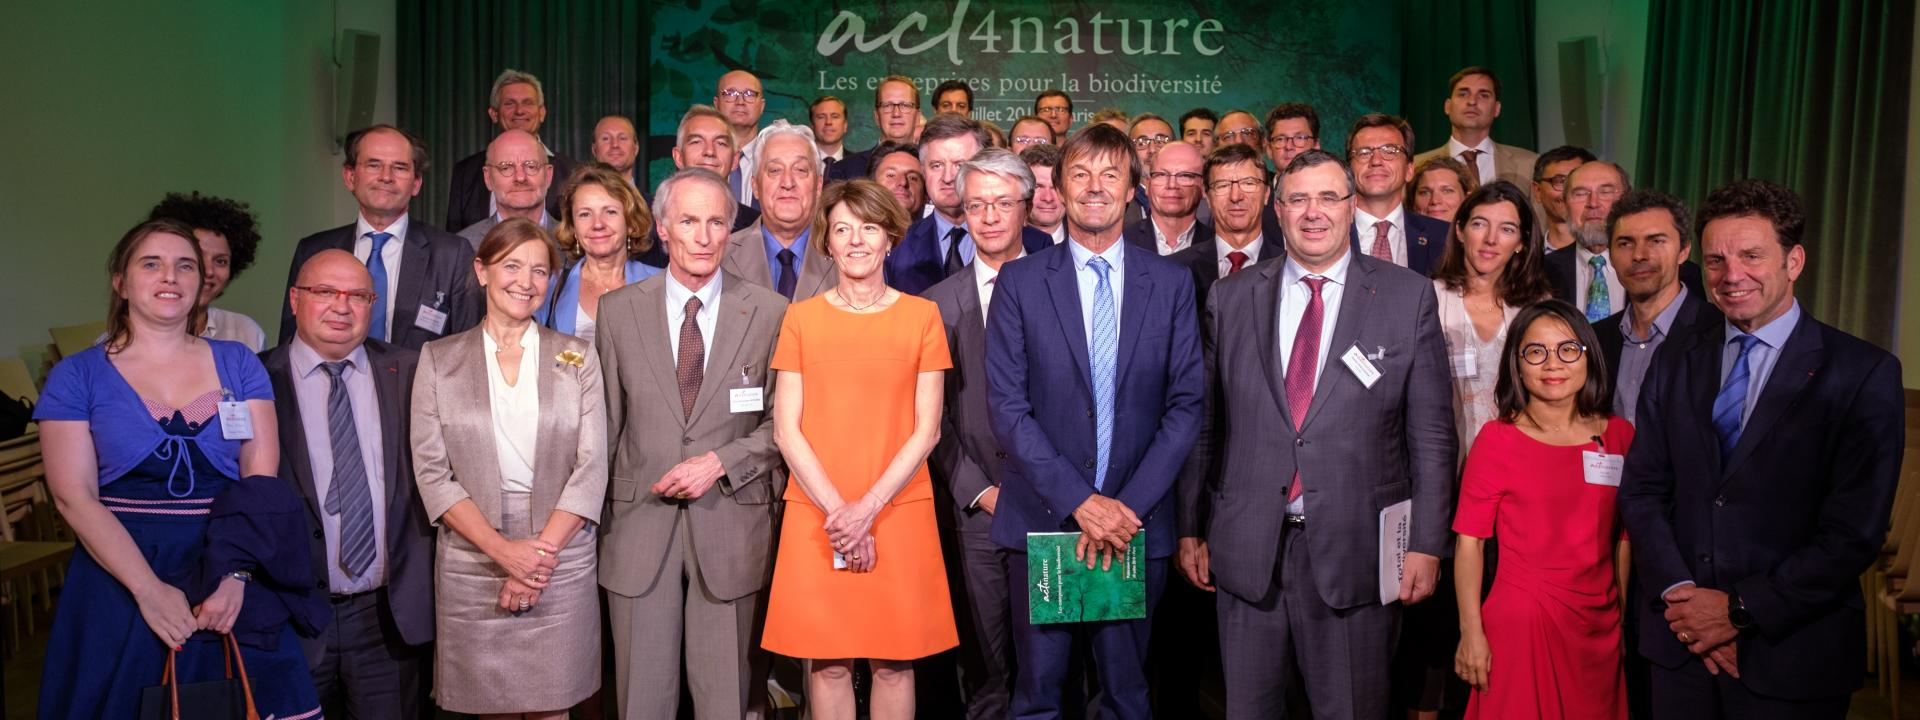 65 dirigeants signent act4nature.